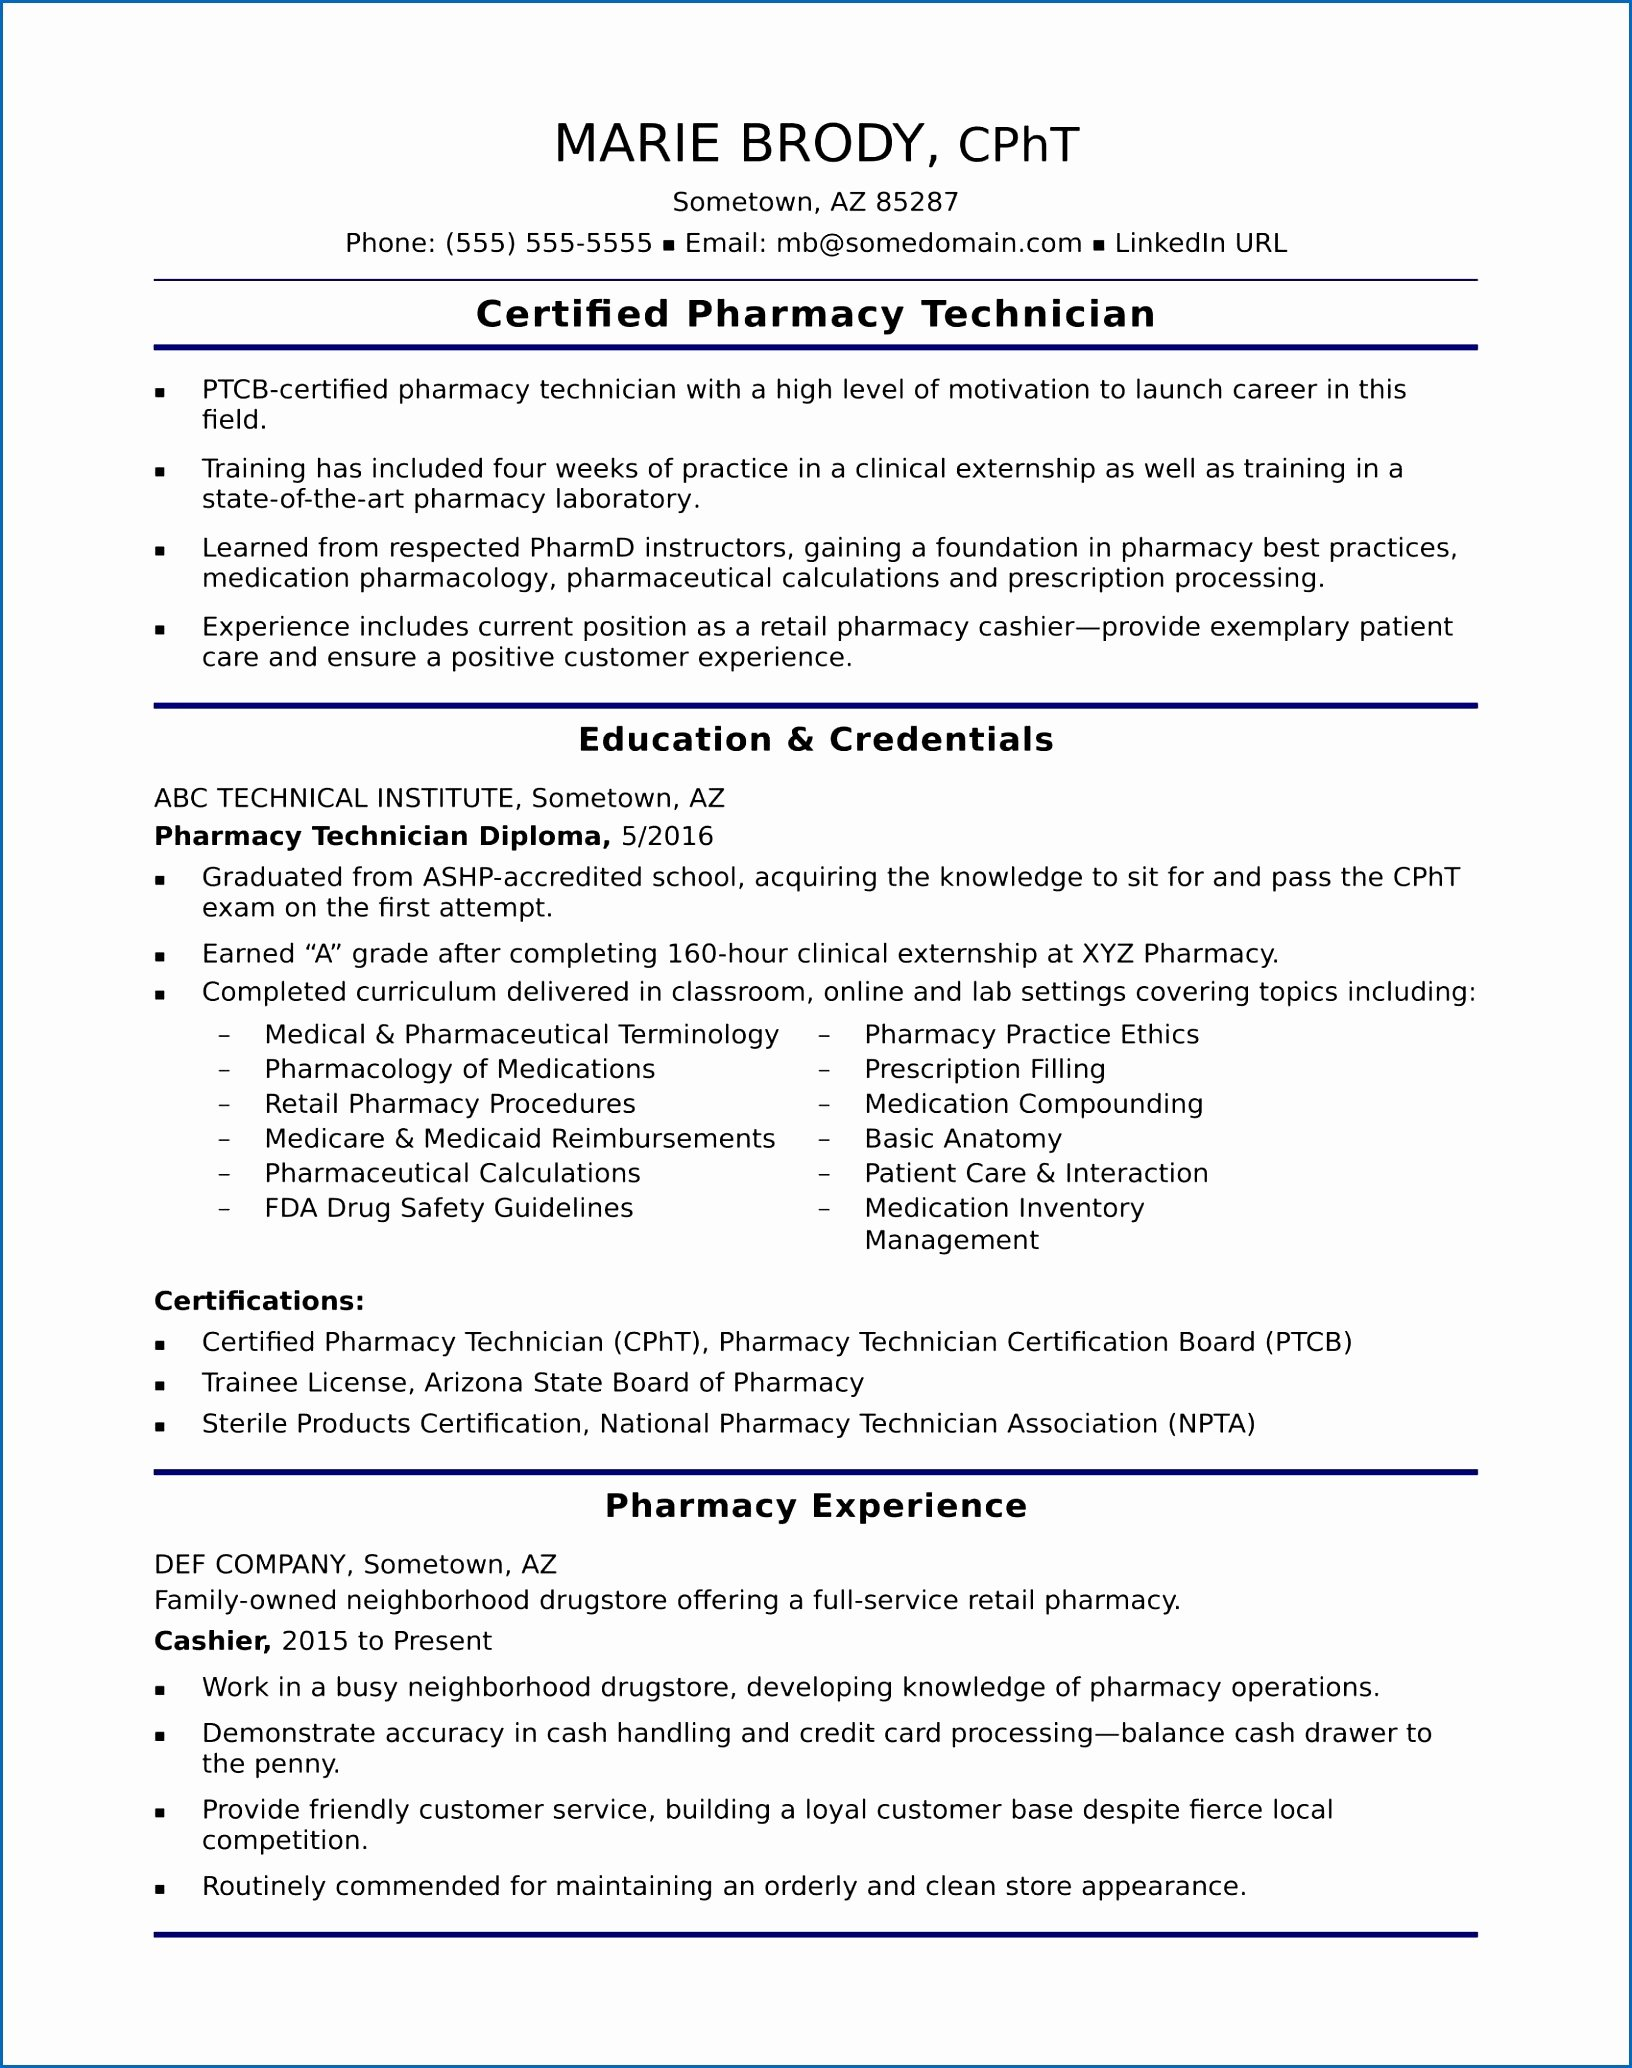 Pharmacy Technician Resume Sample Awesome 7 Resume Basic